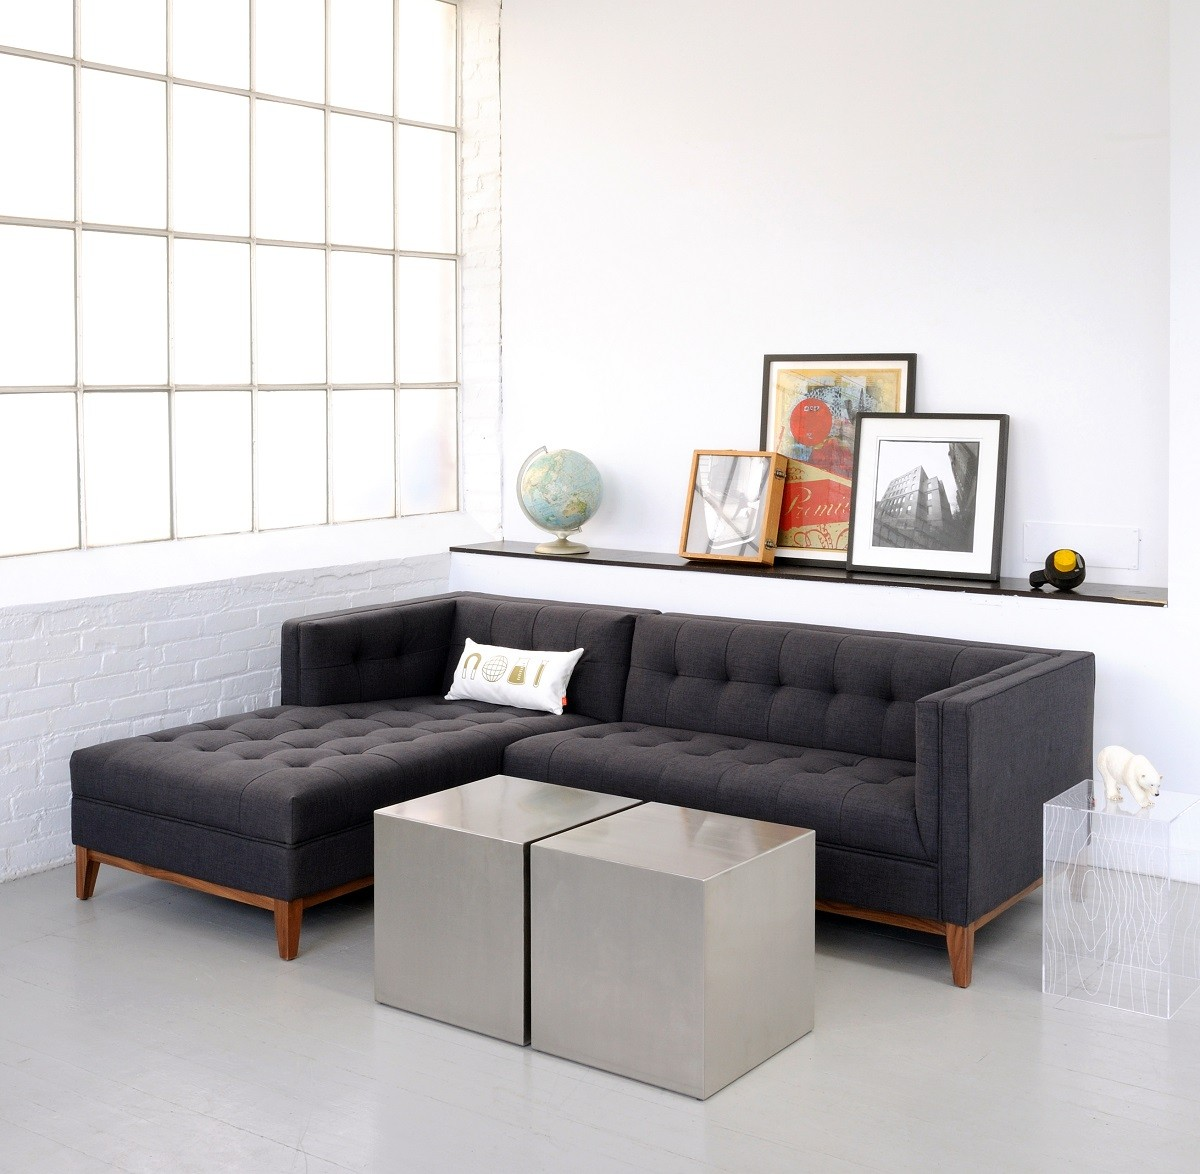 Apartment Size Sectional Couch - TheApartment